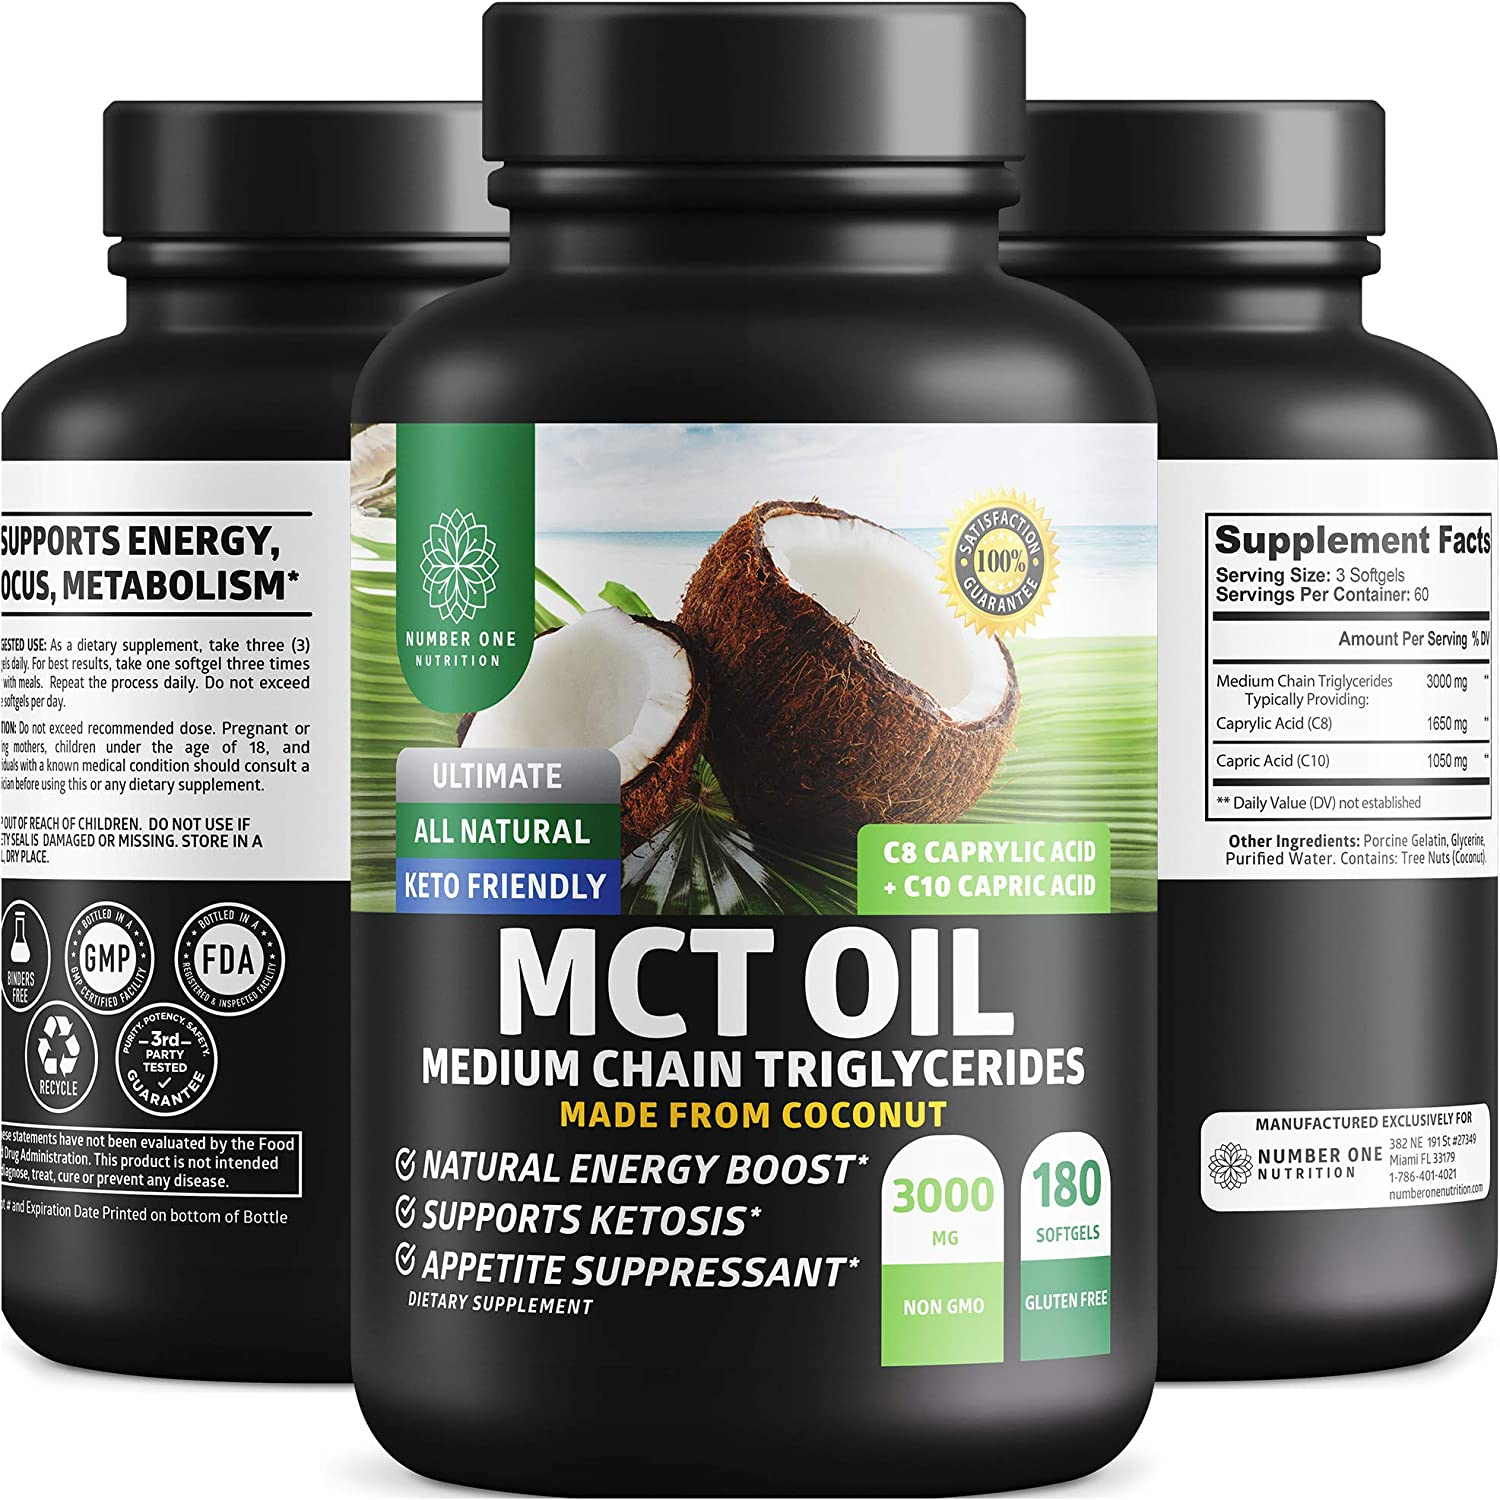 Number One Nutrition MCT Oil Softgels